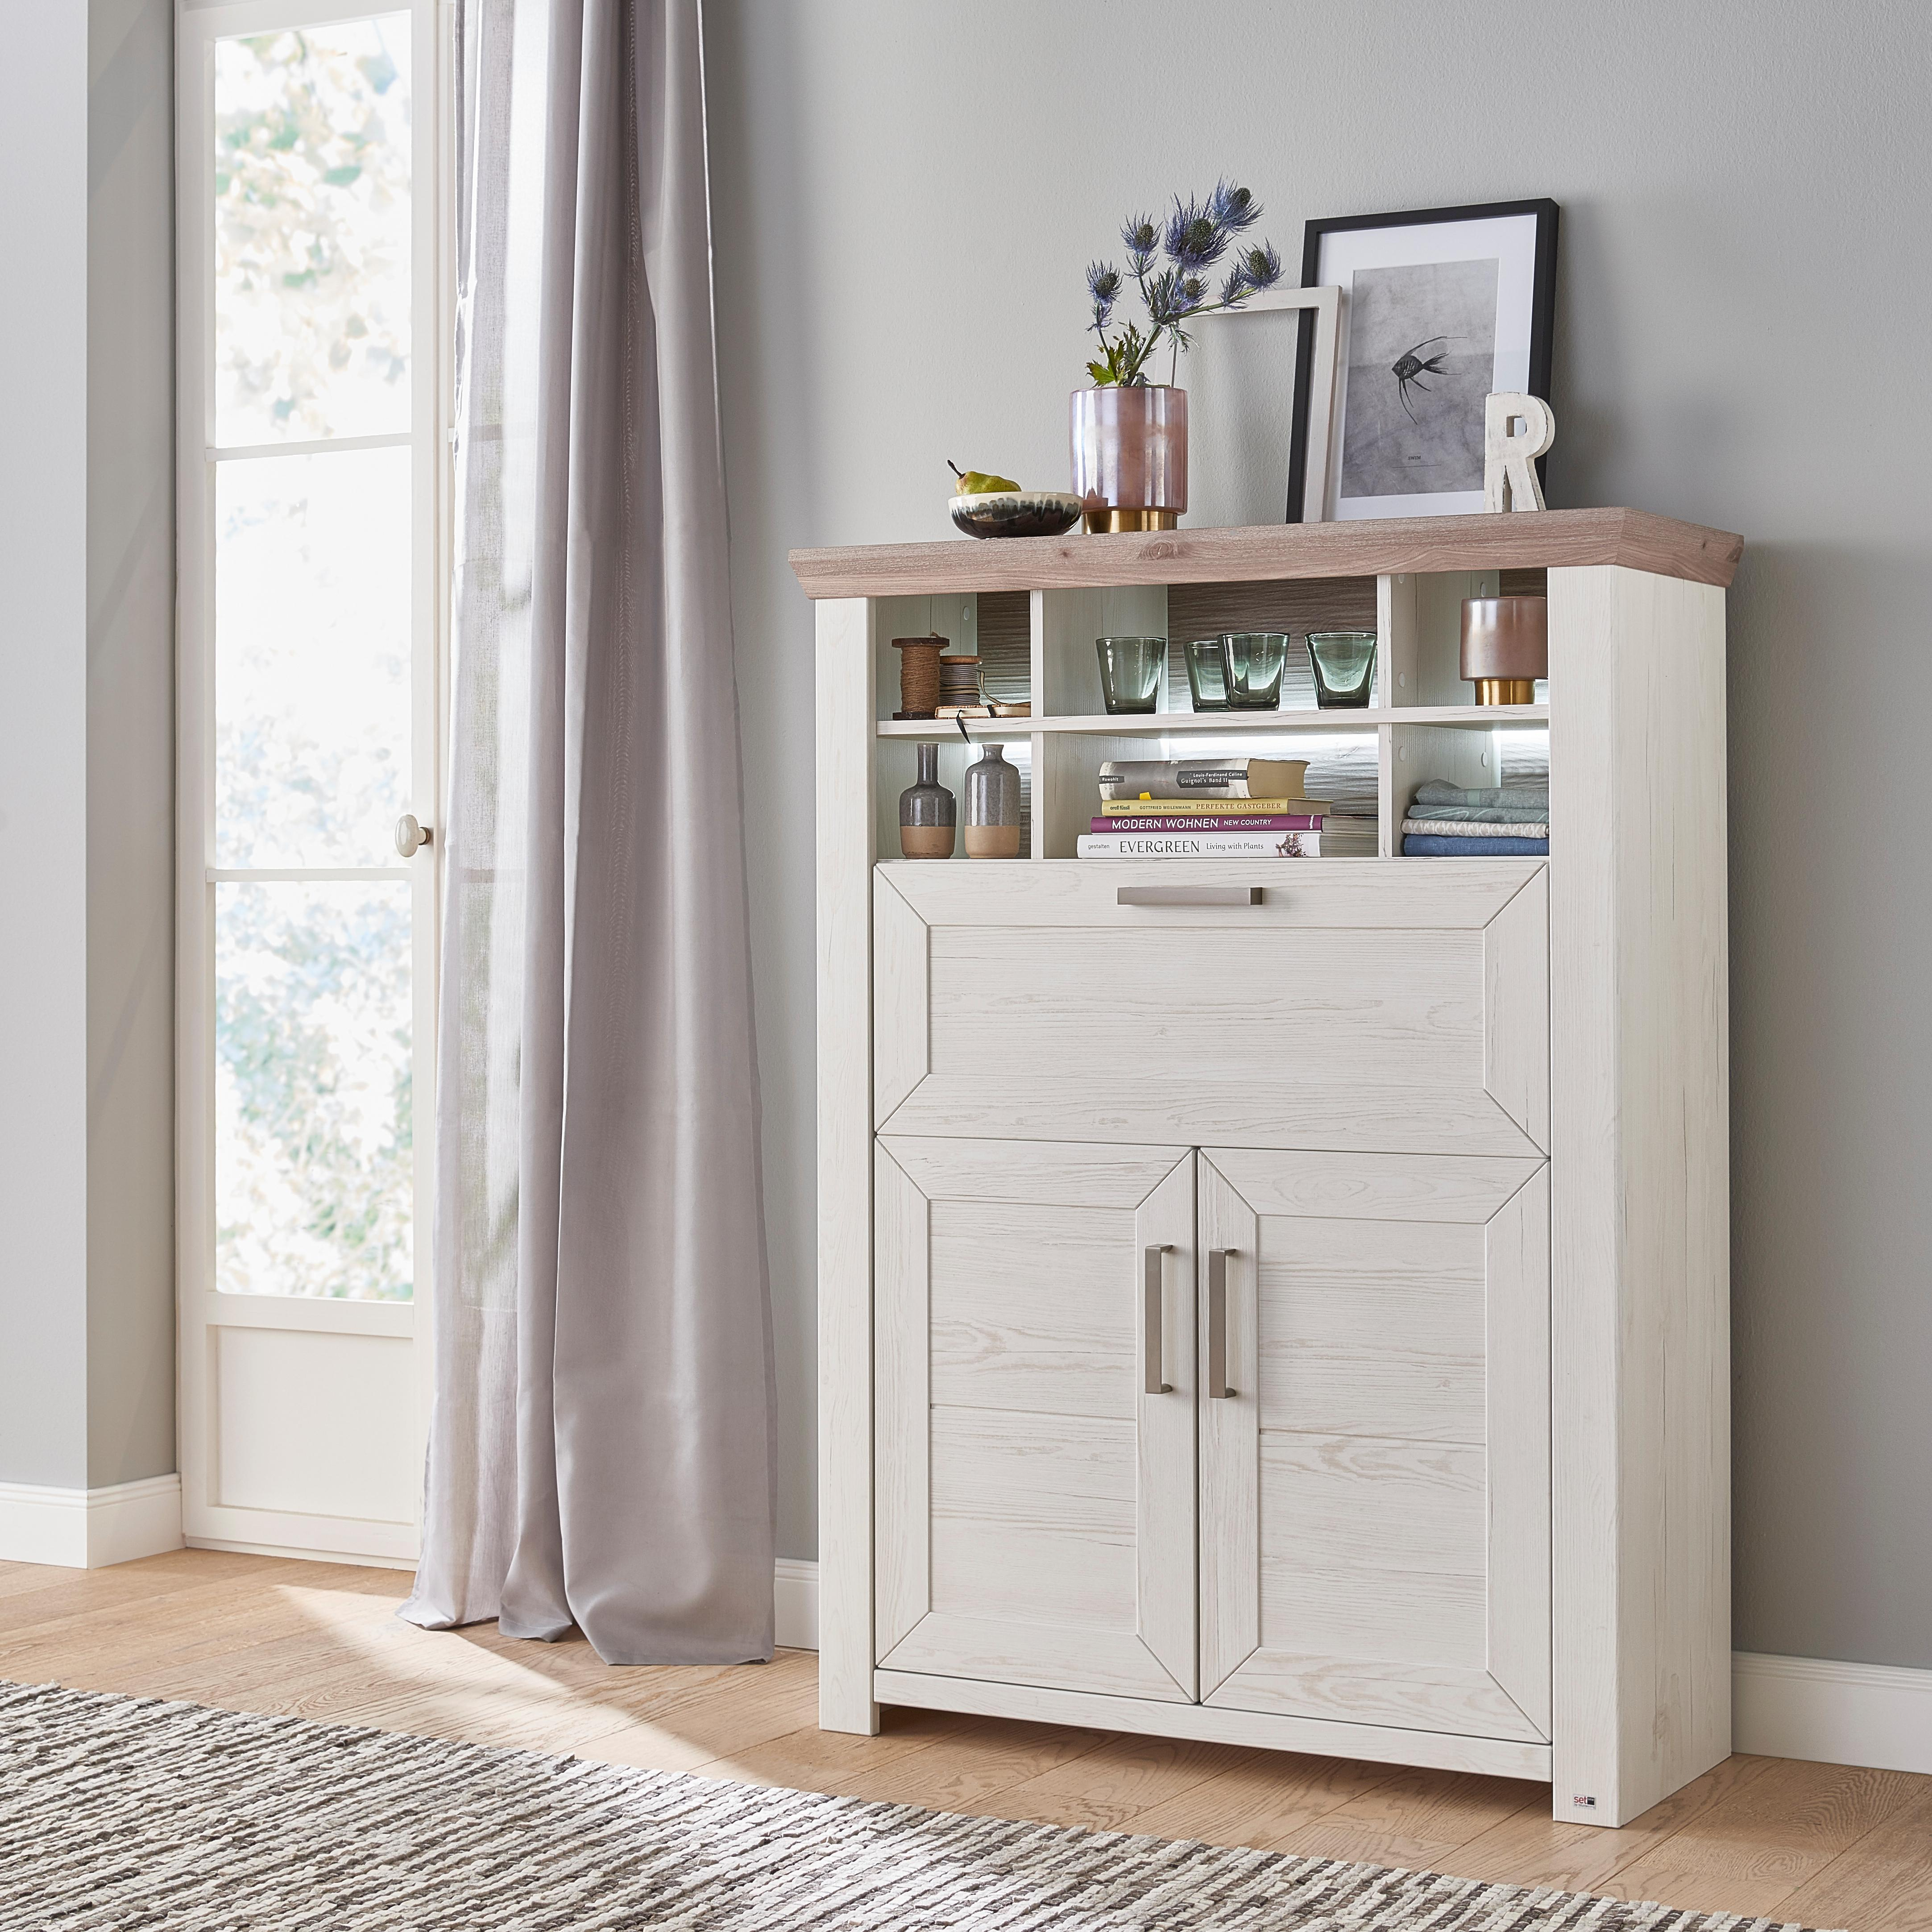 set one by Musterring Highboard york